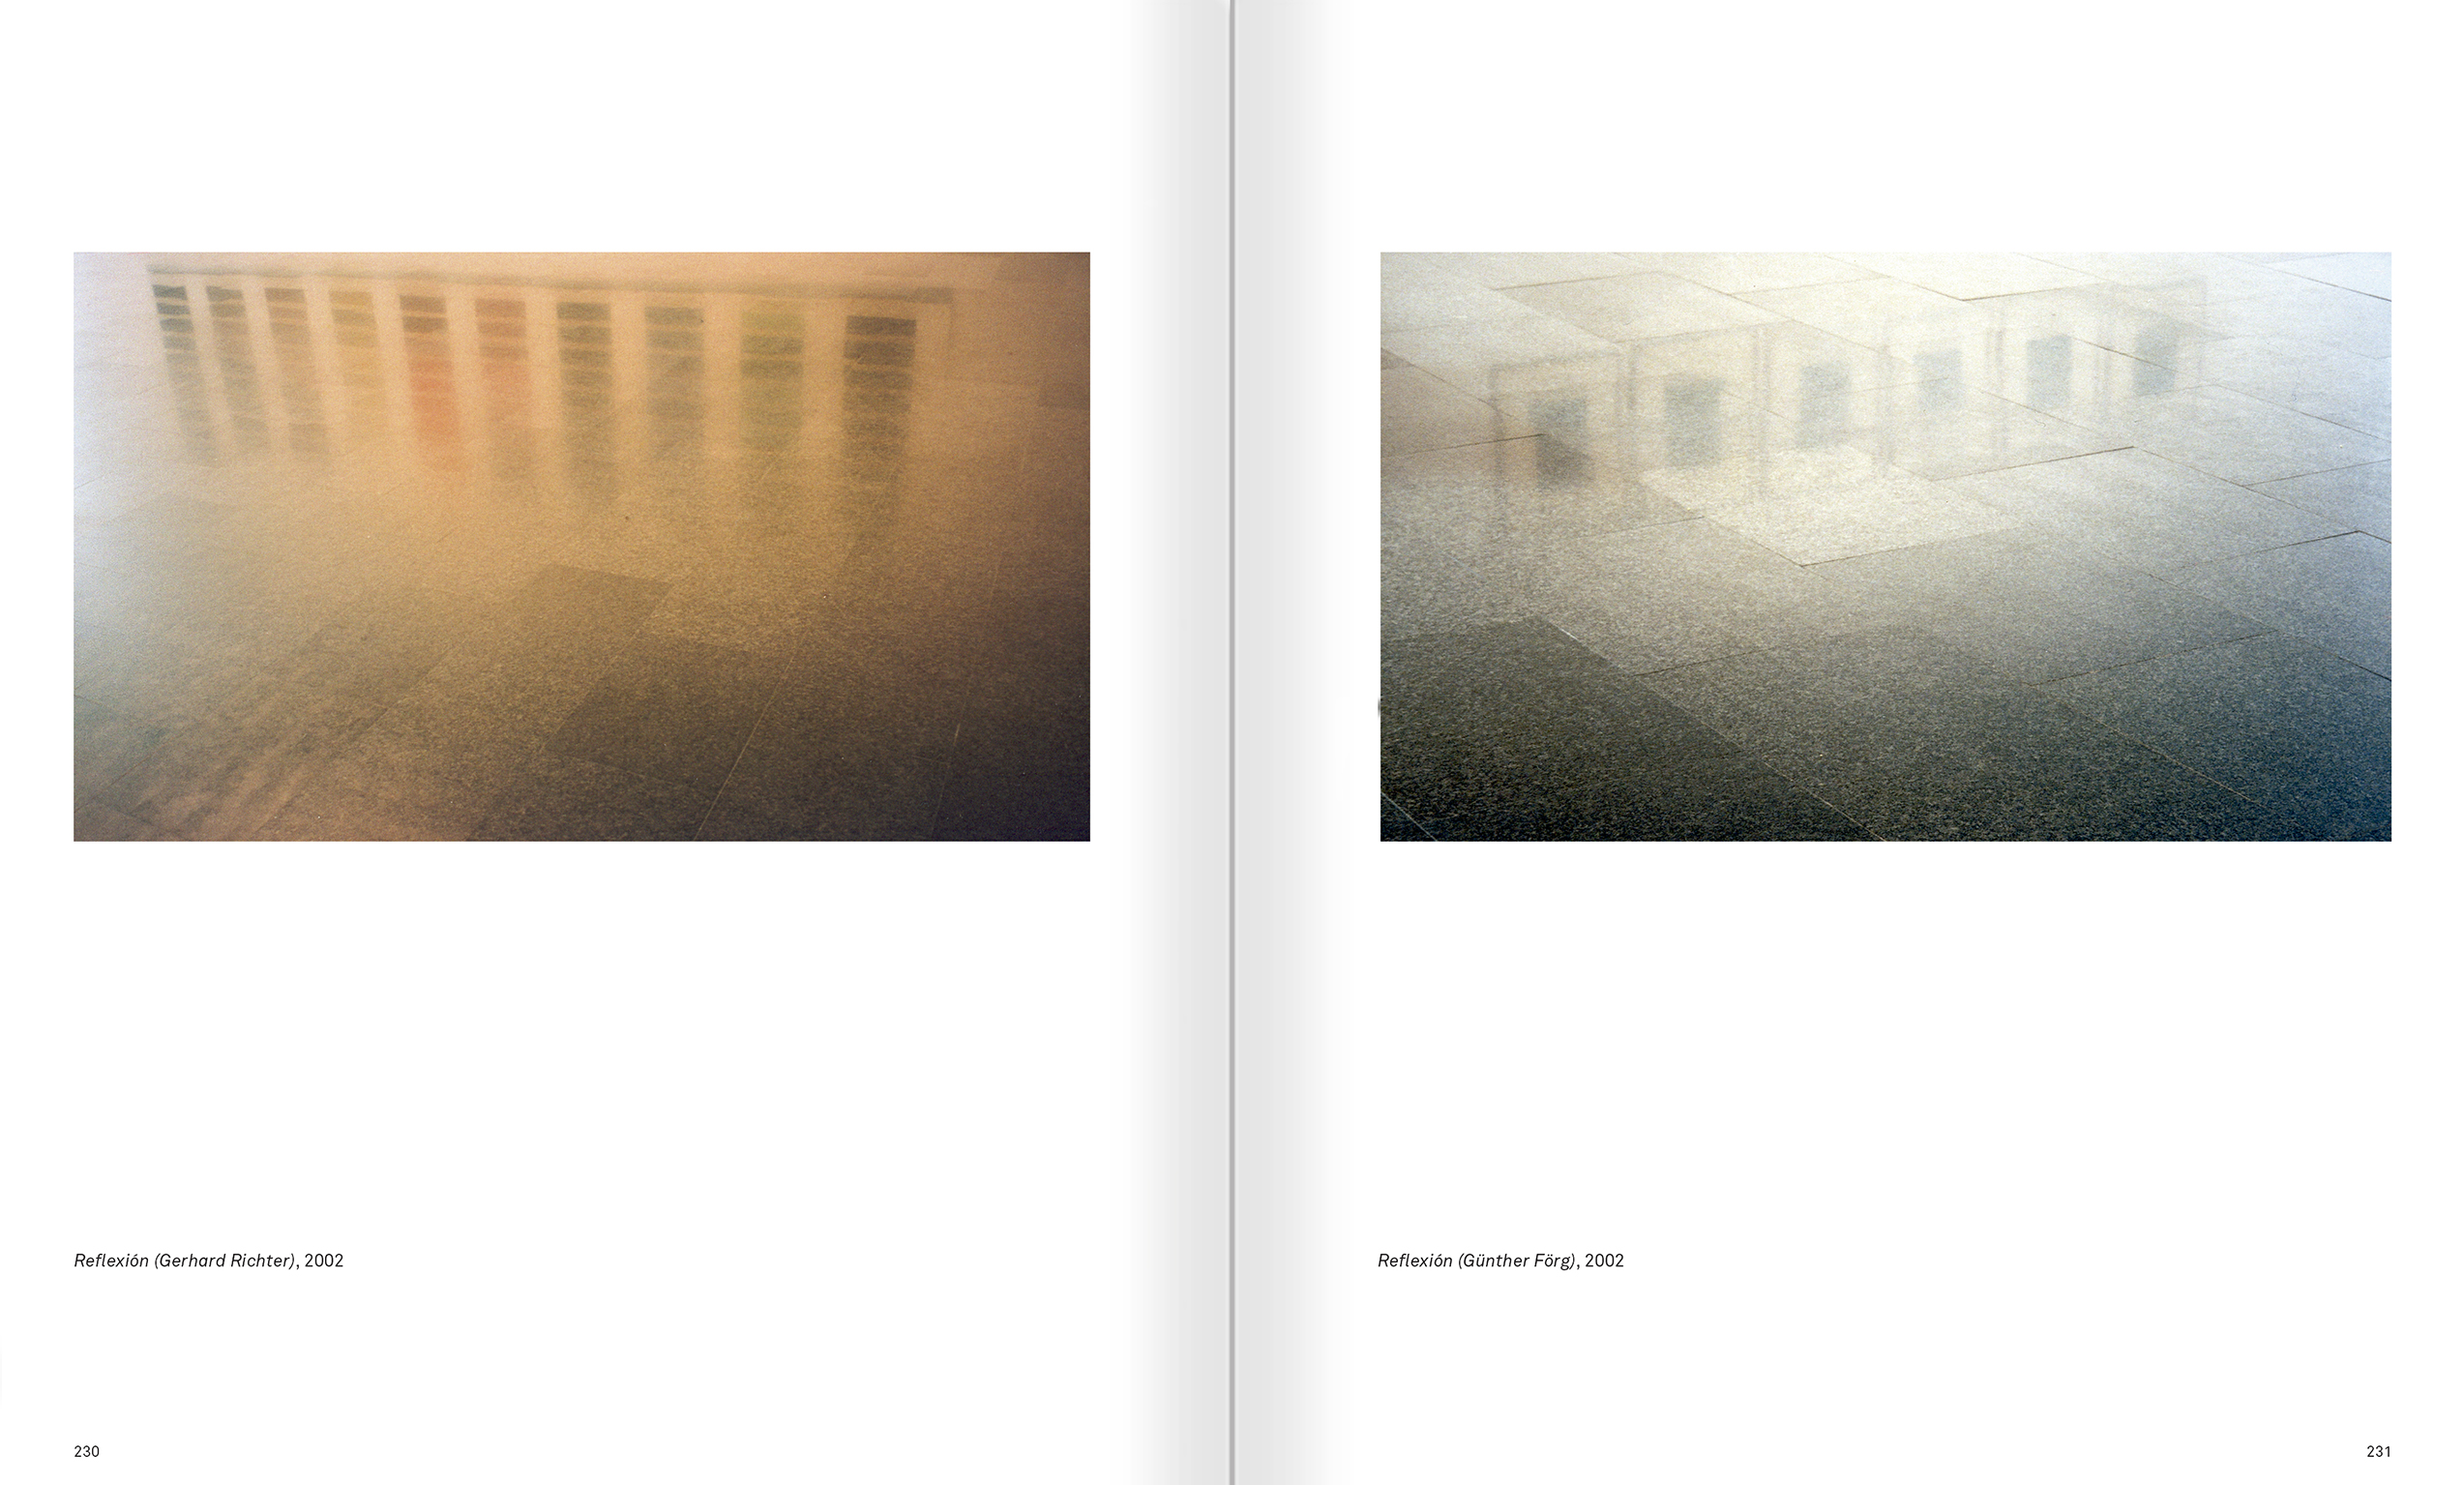 Selection from the catalogue 'Ignasi Aballí. 0-24 h', pages 230 and 231